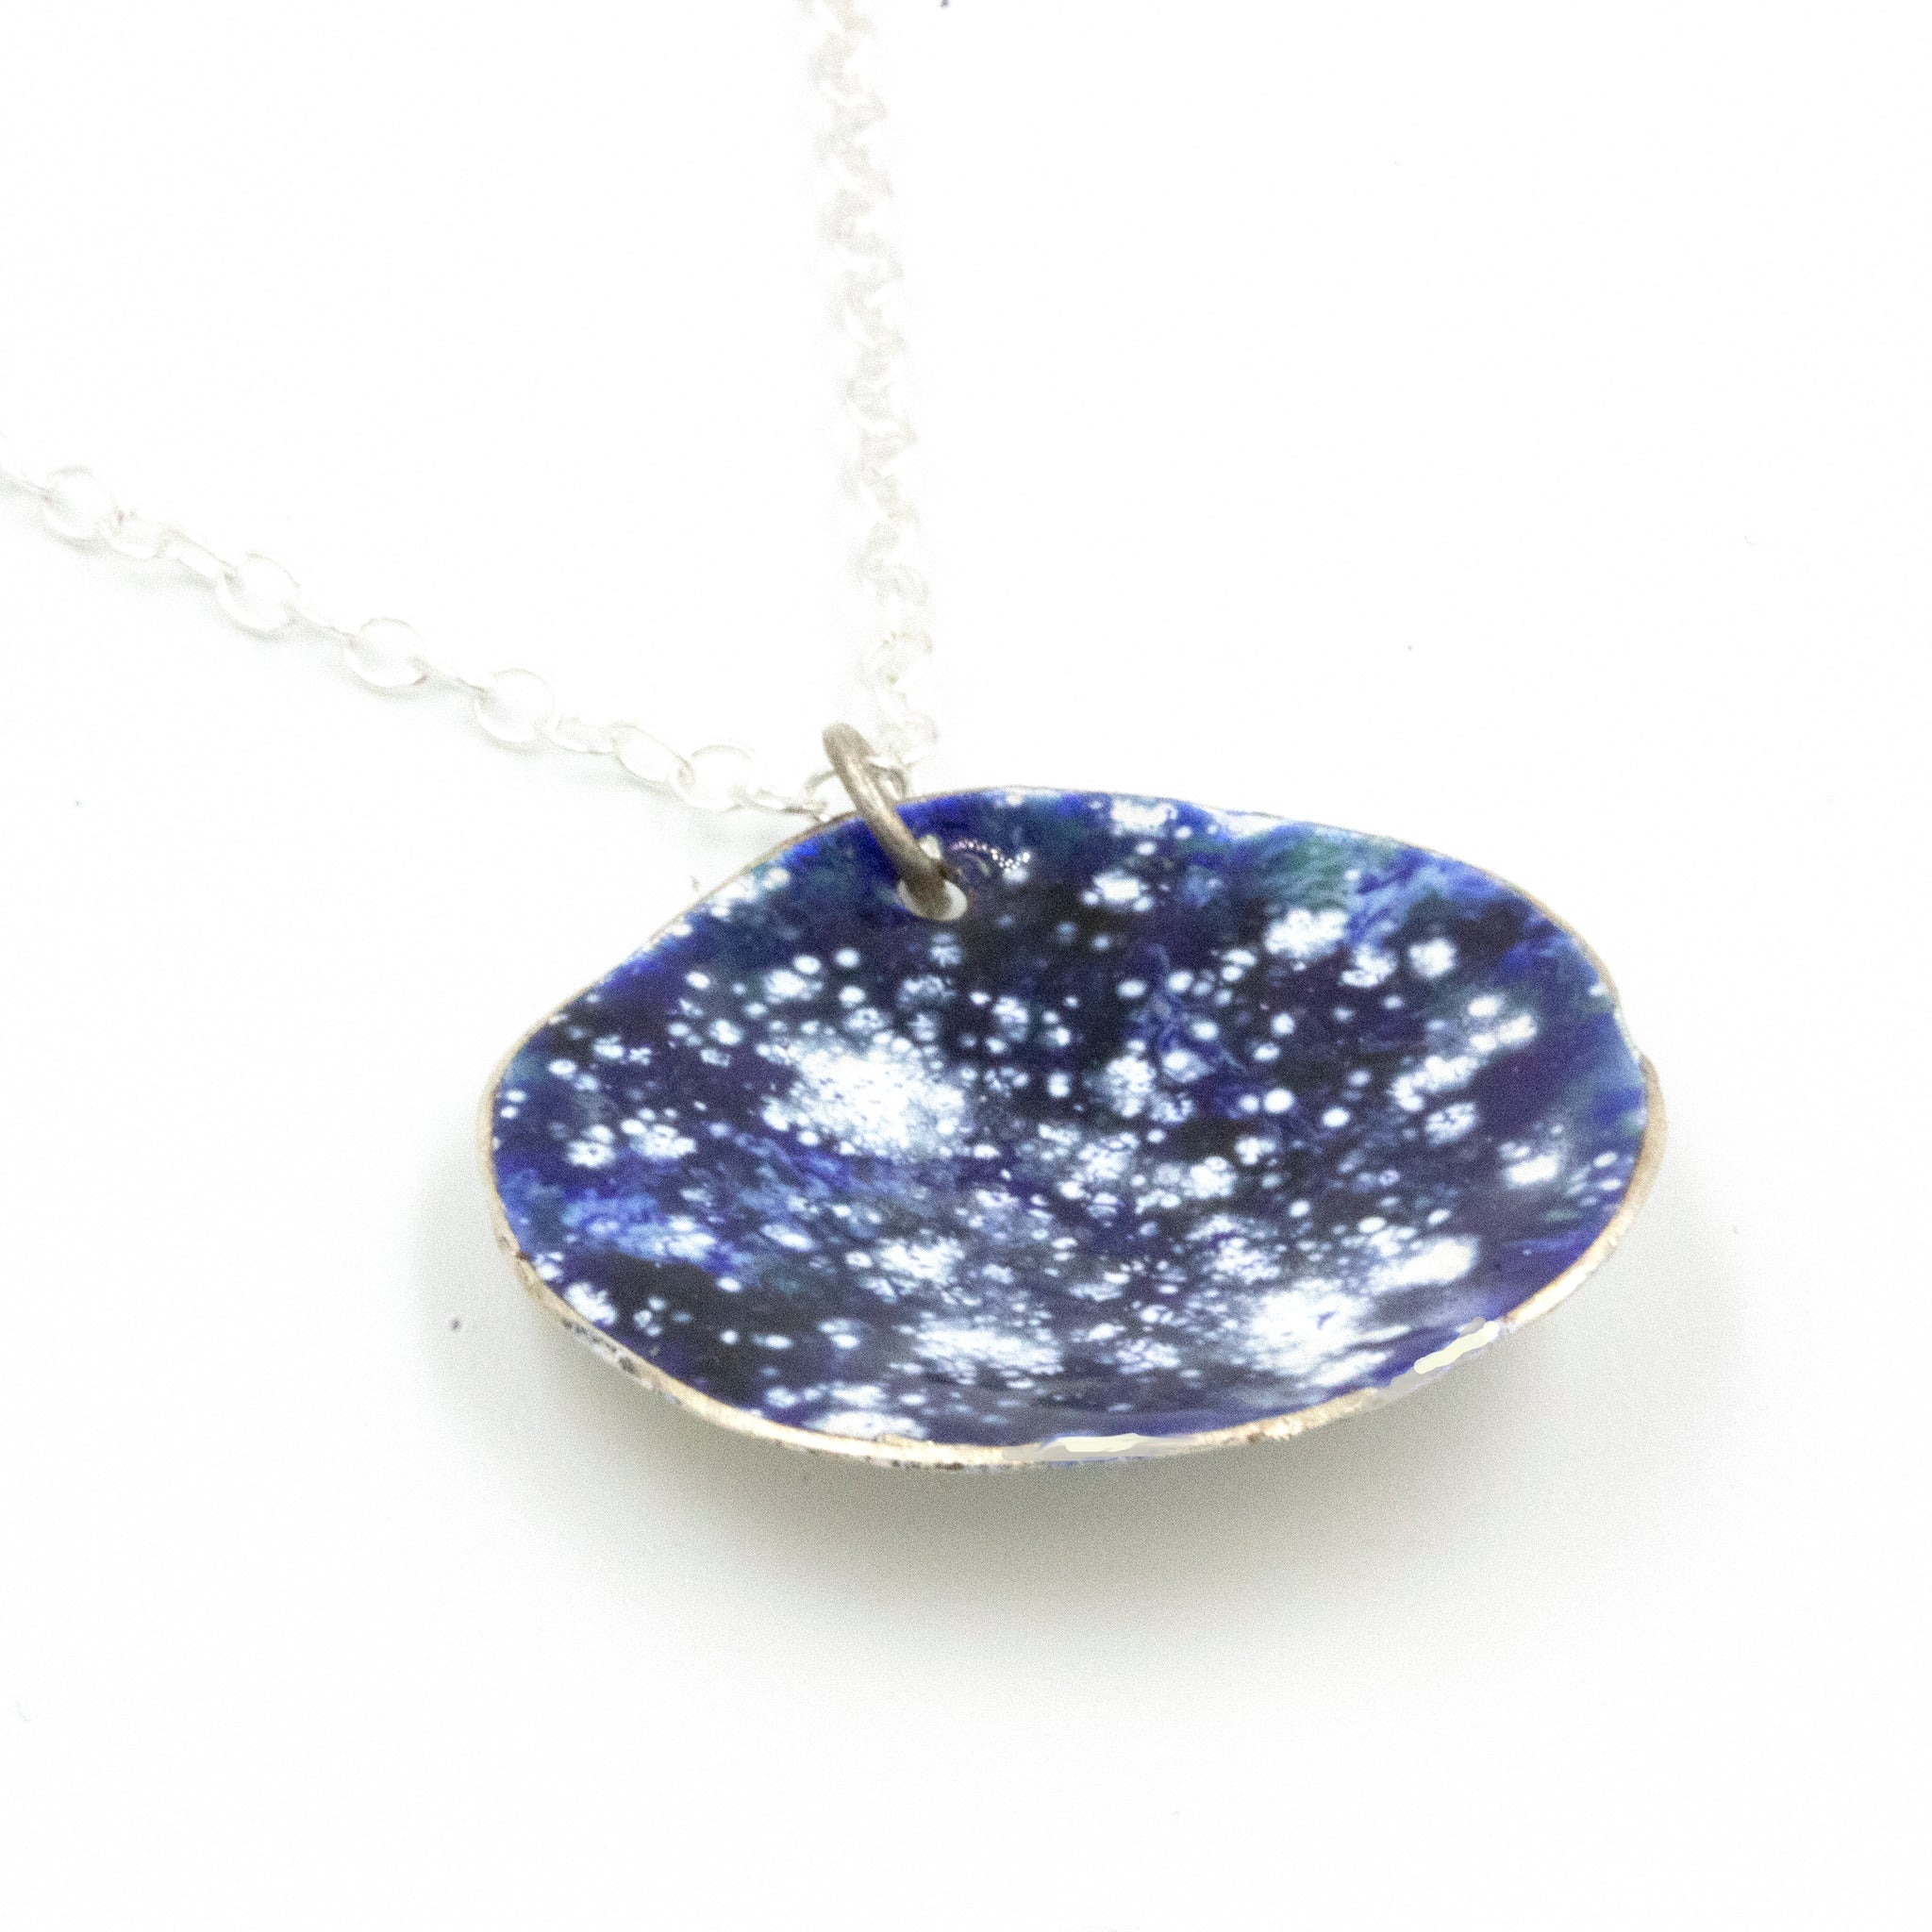 Night sky inspired pendant by Gemma Tremayne Jewellery. Handmade in Fine Silver and Enamels.